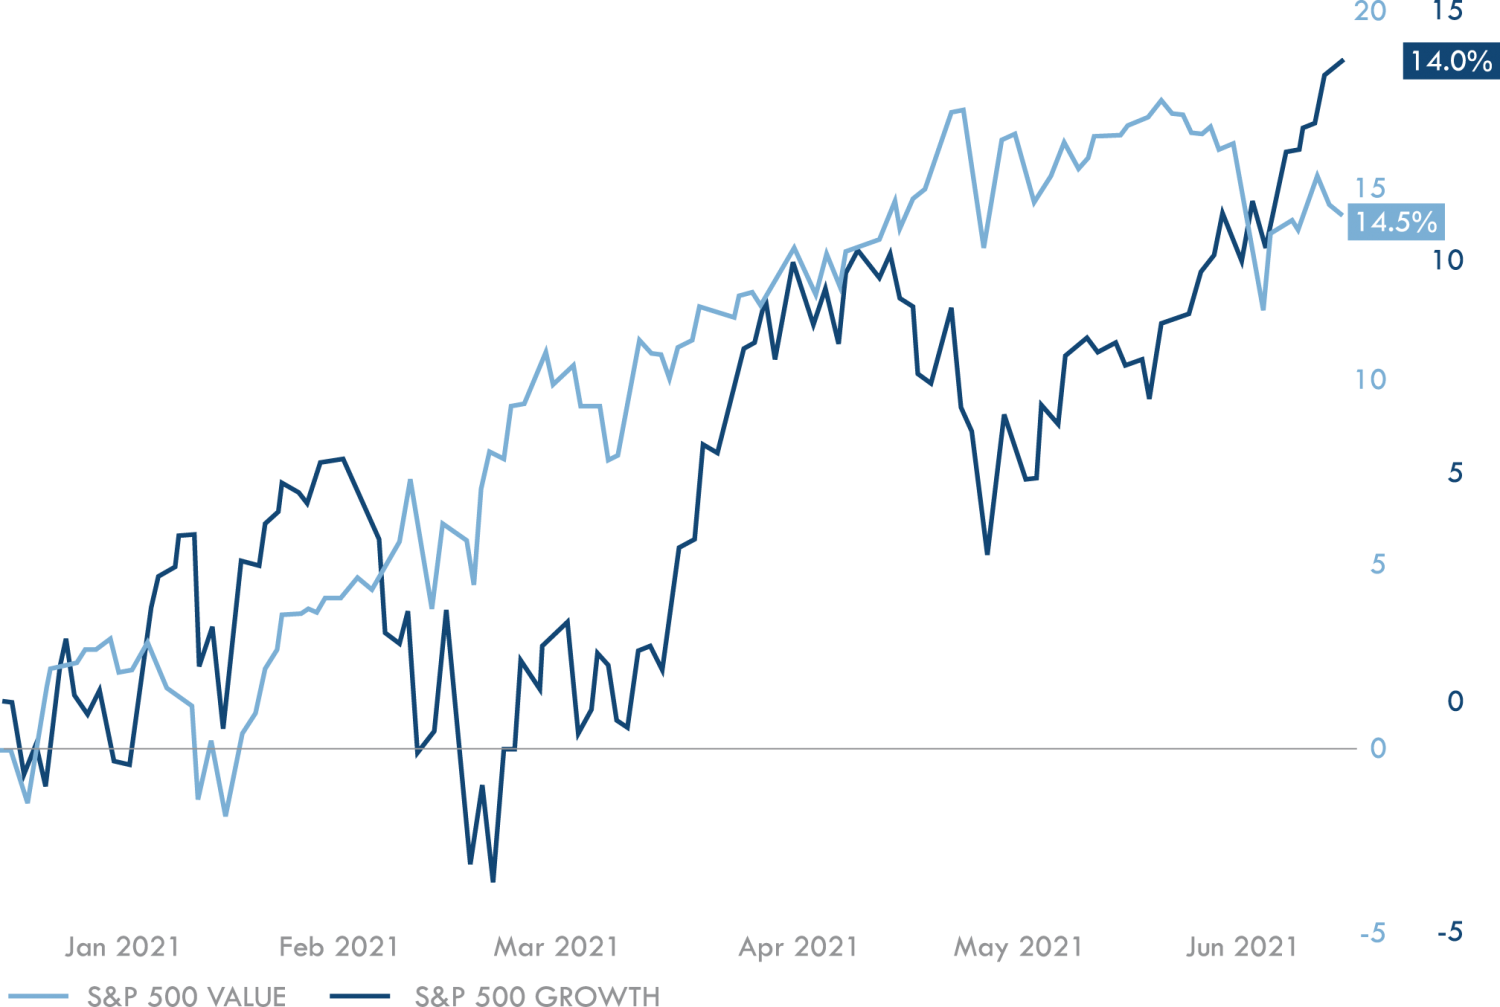 S&P 500 Value VS. S&P 500 Growth This Year